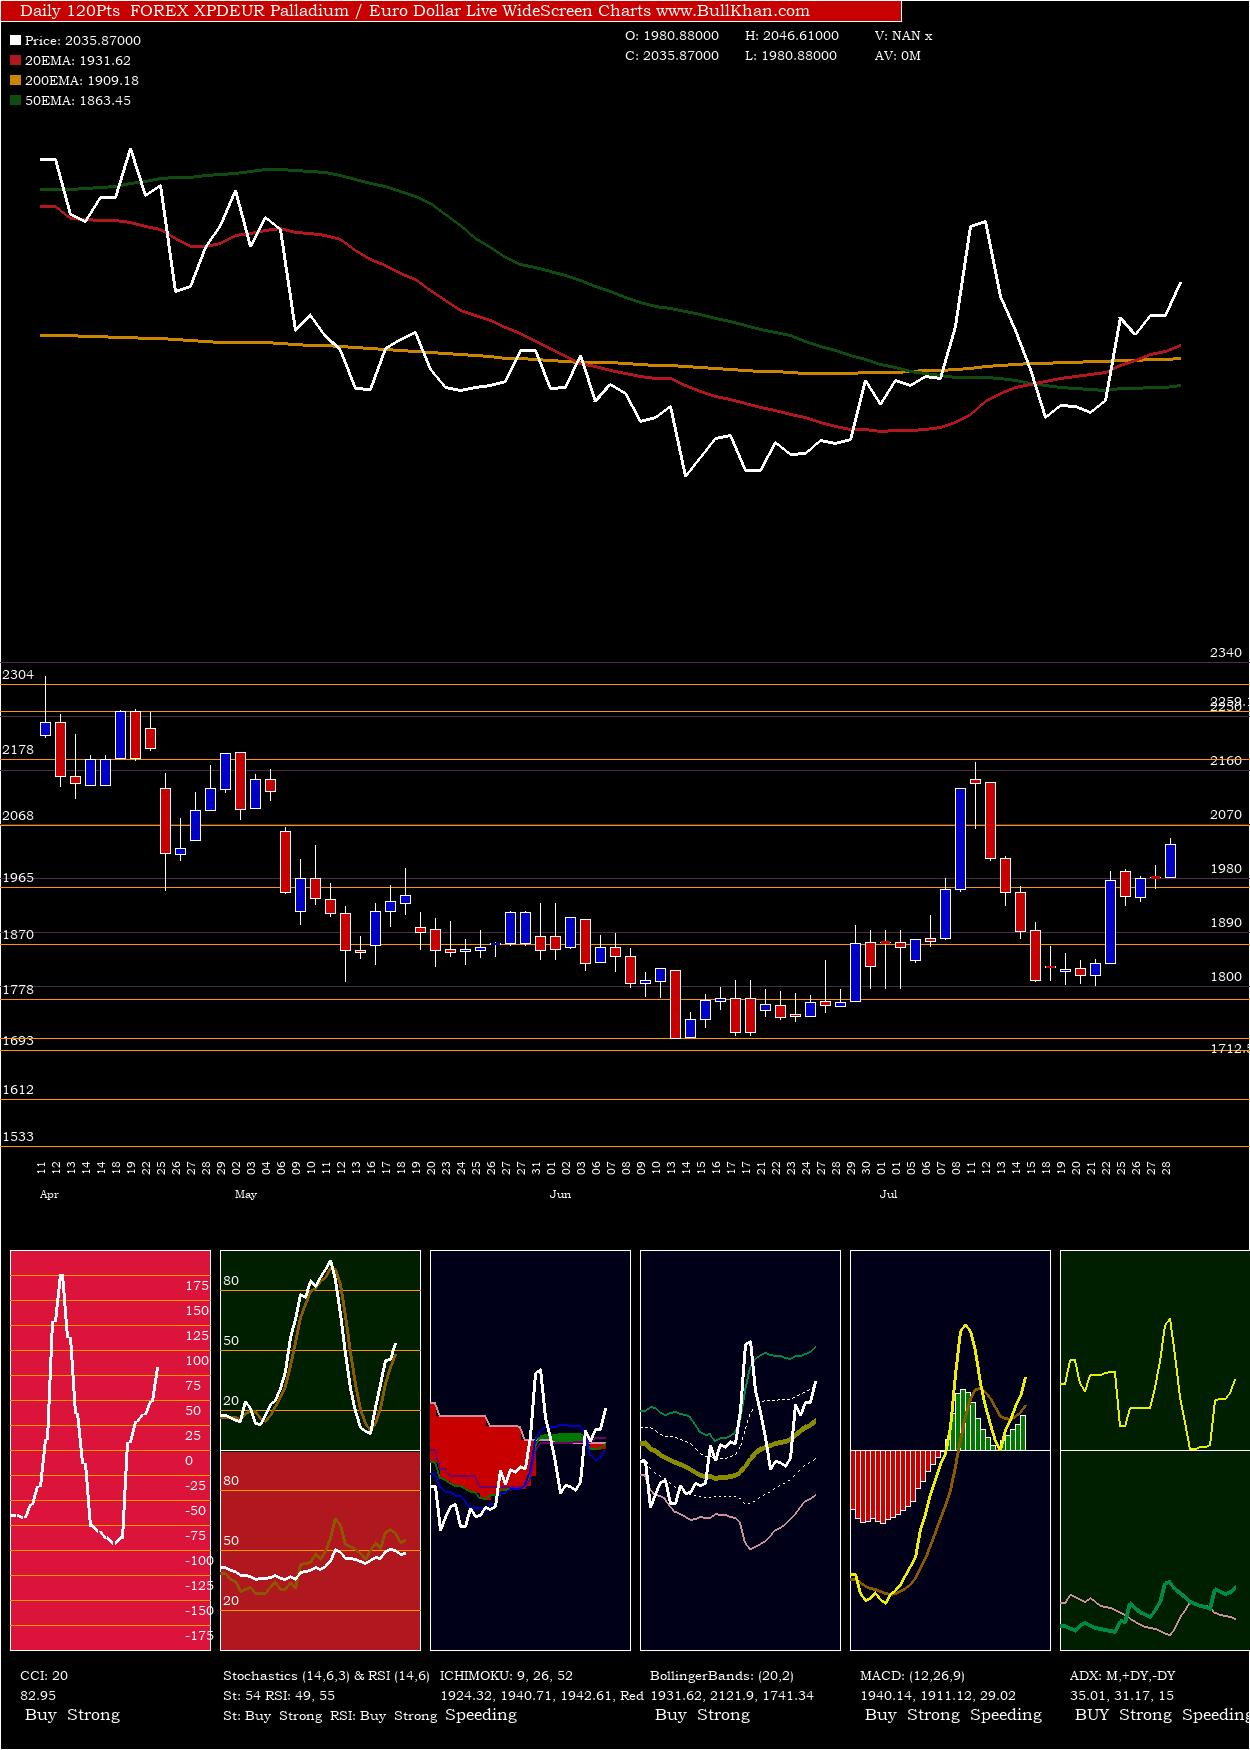 Palladium / Euro Dollar charts and indicators